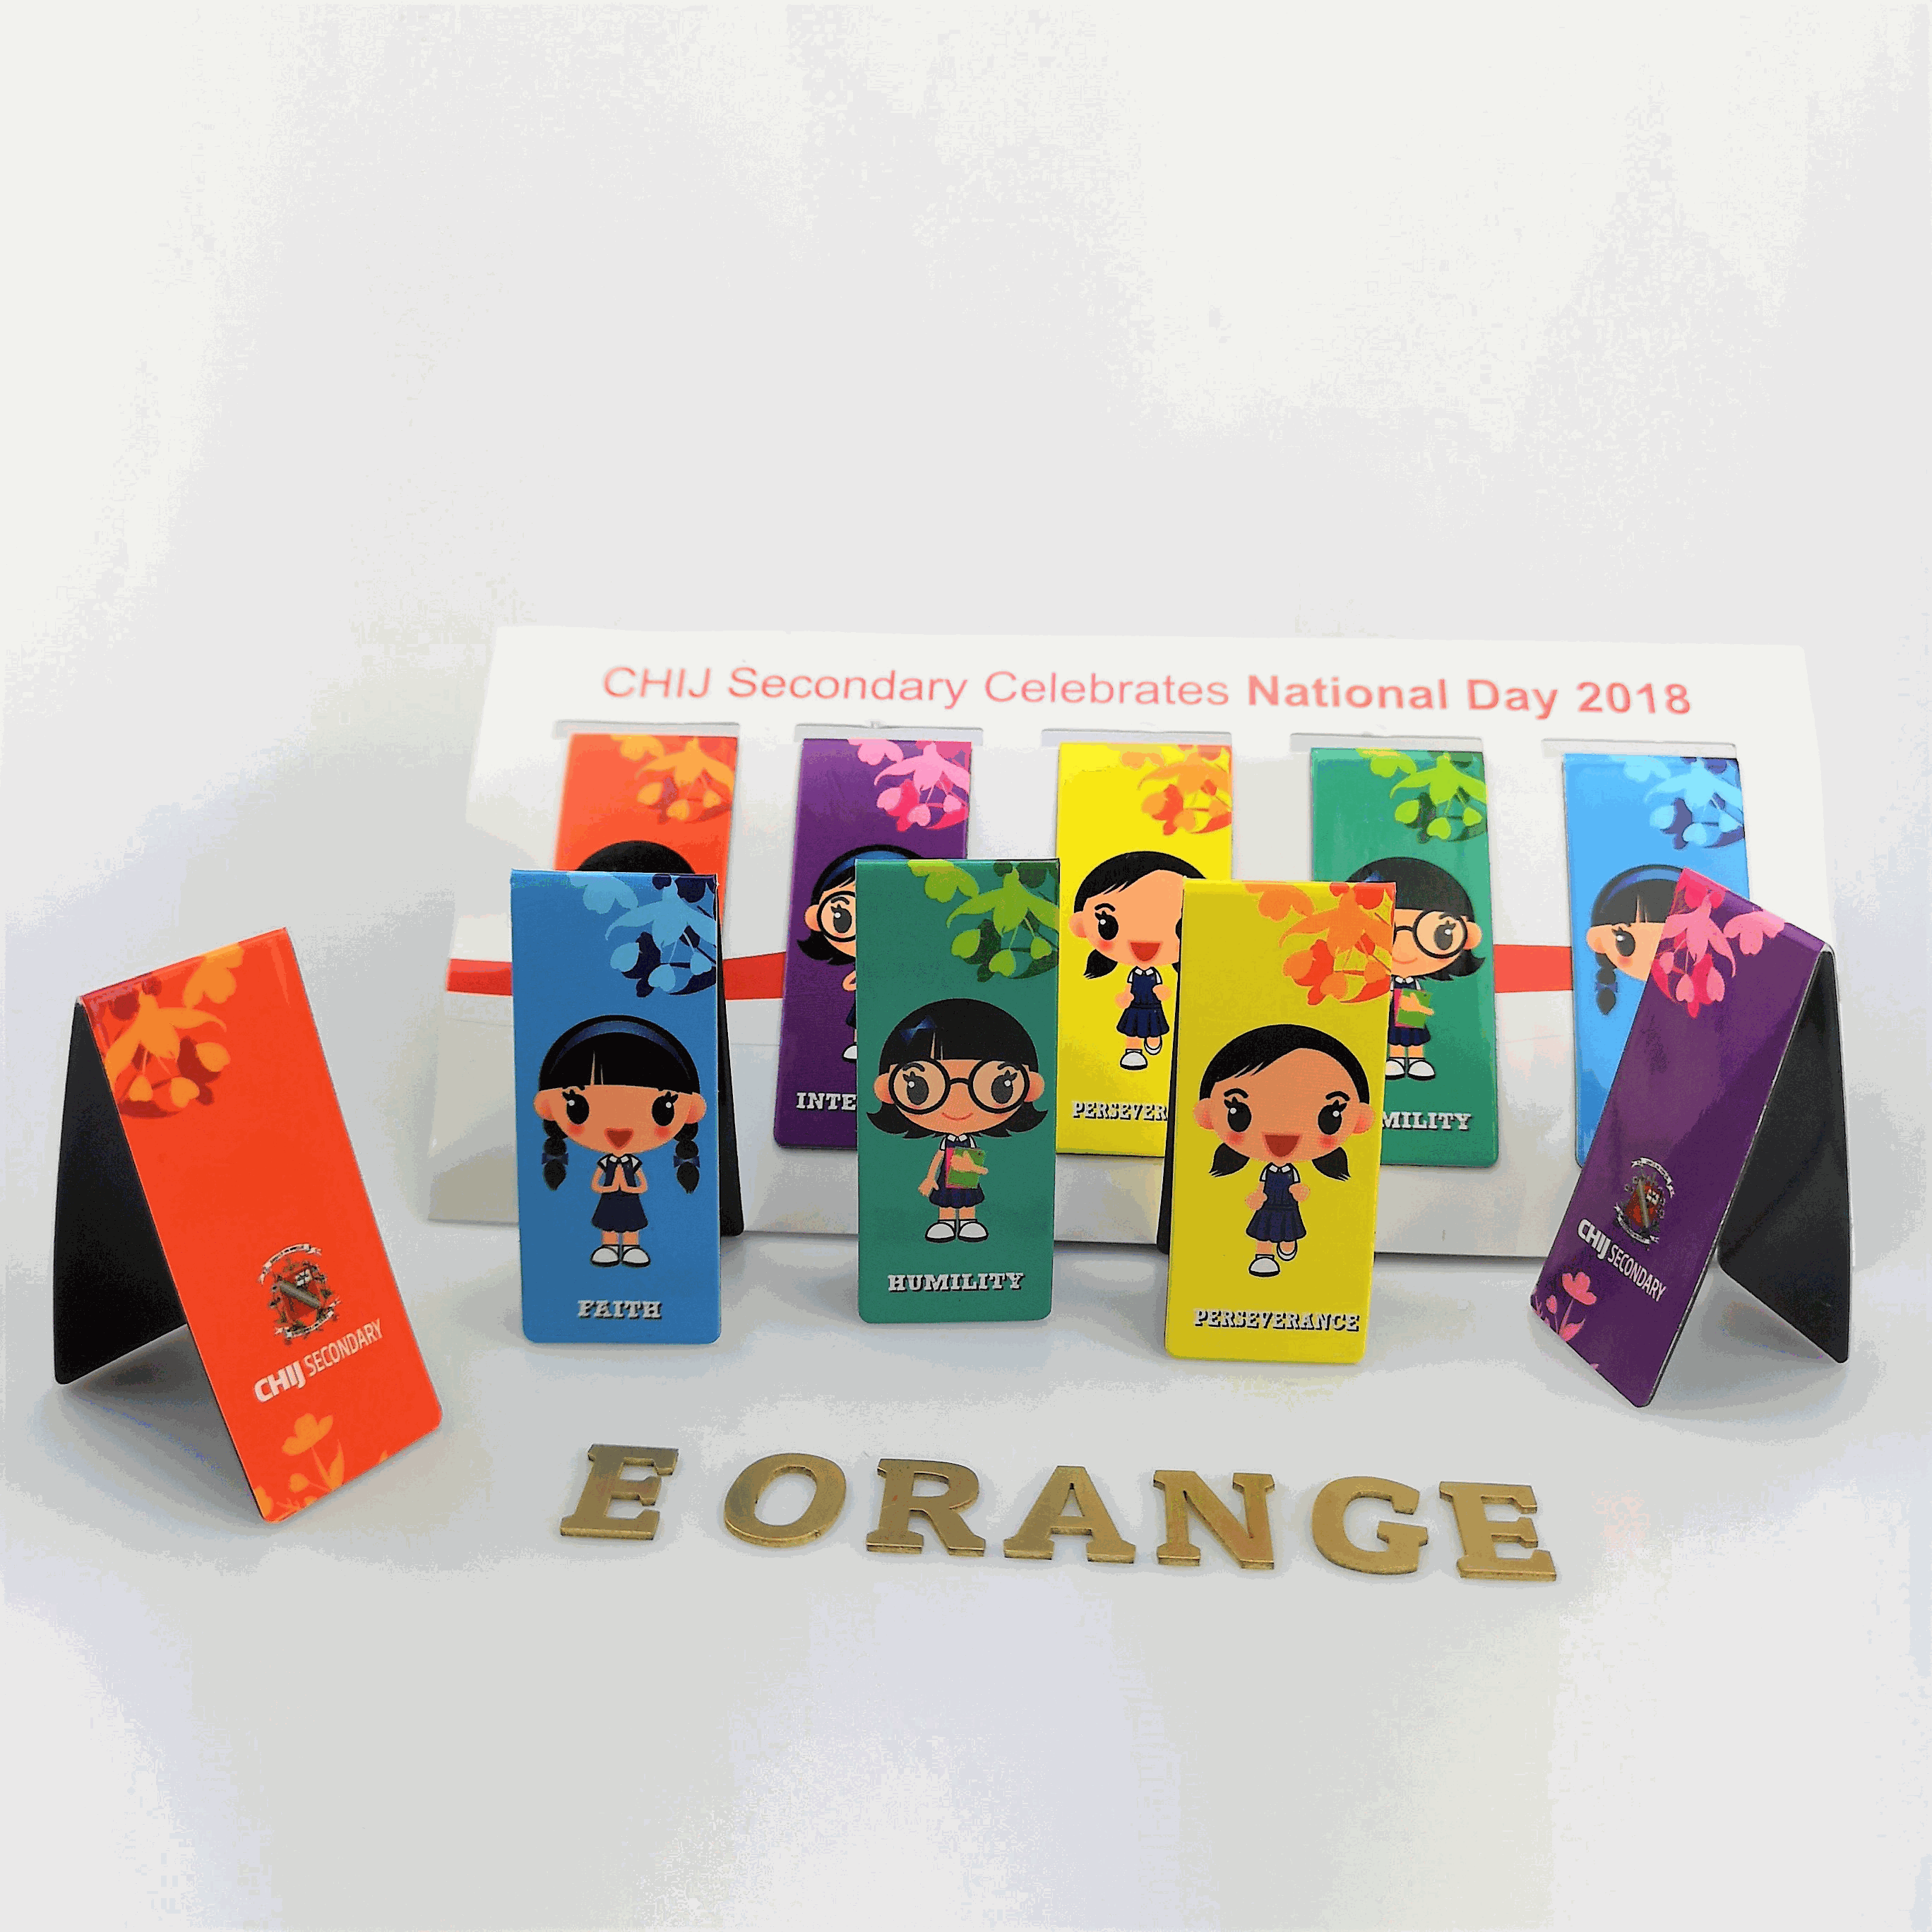 customised customized Magnet Bookmarks Sets printing logo full color colour corporate gift promotional gift giveaway door wholesale singapore supplier